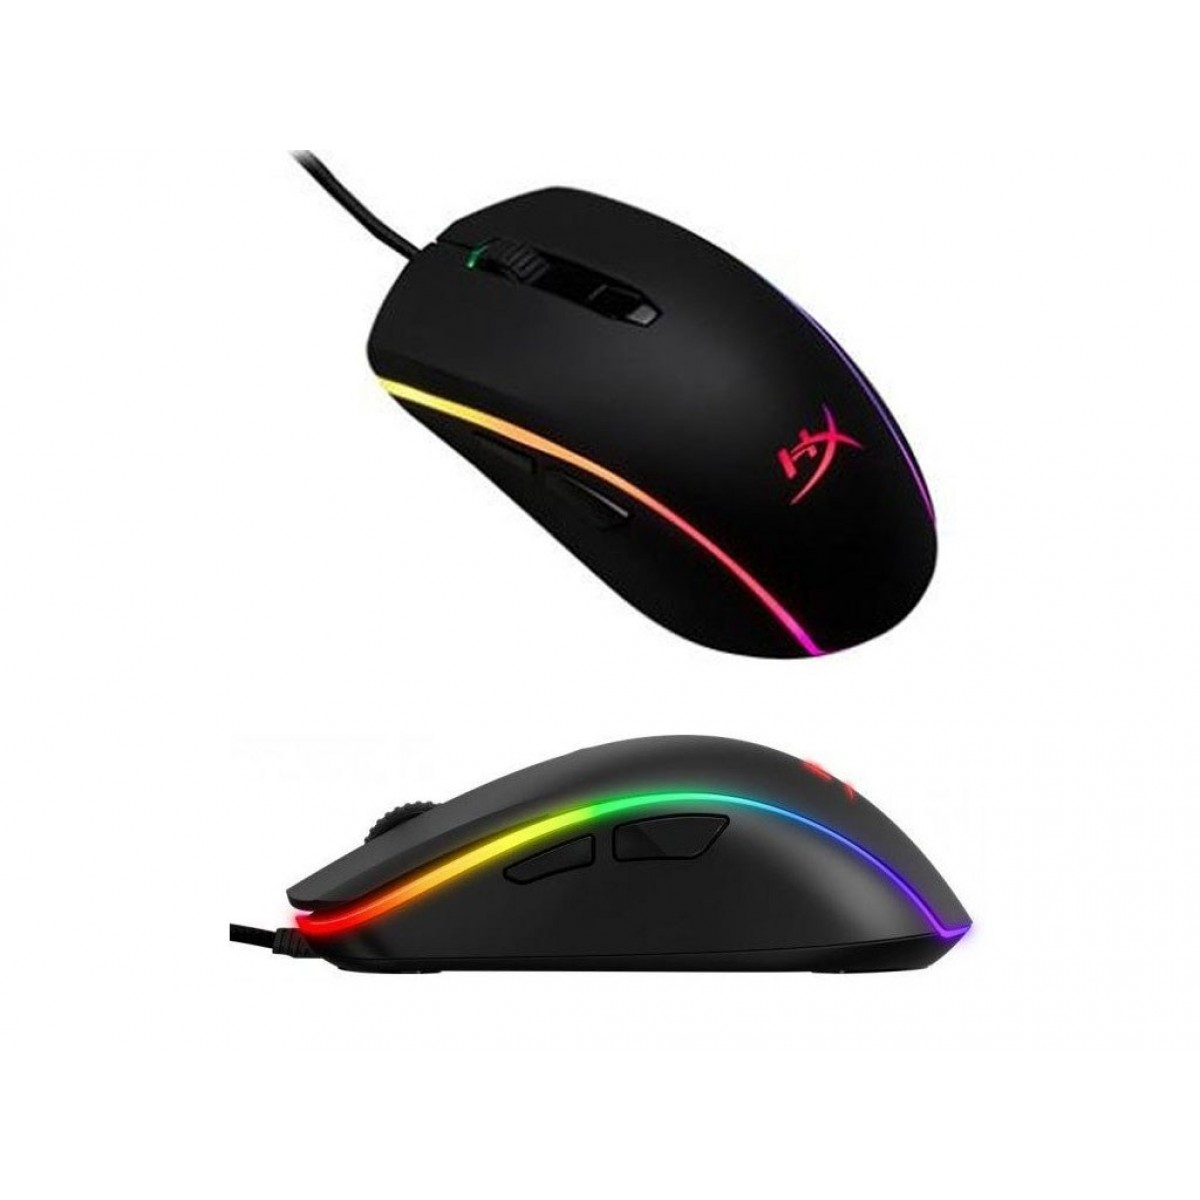 HYPER-X Pulsefire Surge RGB Gaming Mouse